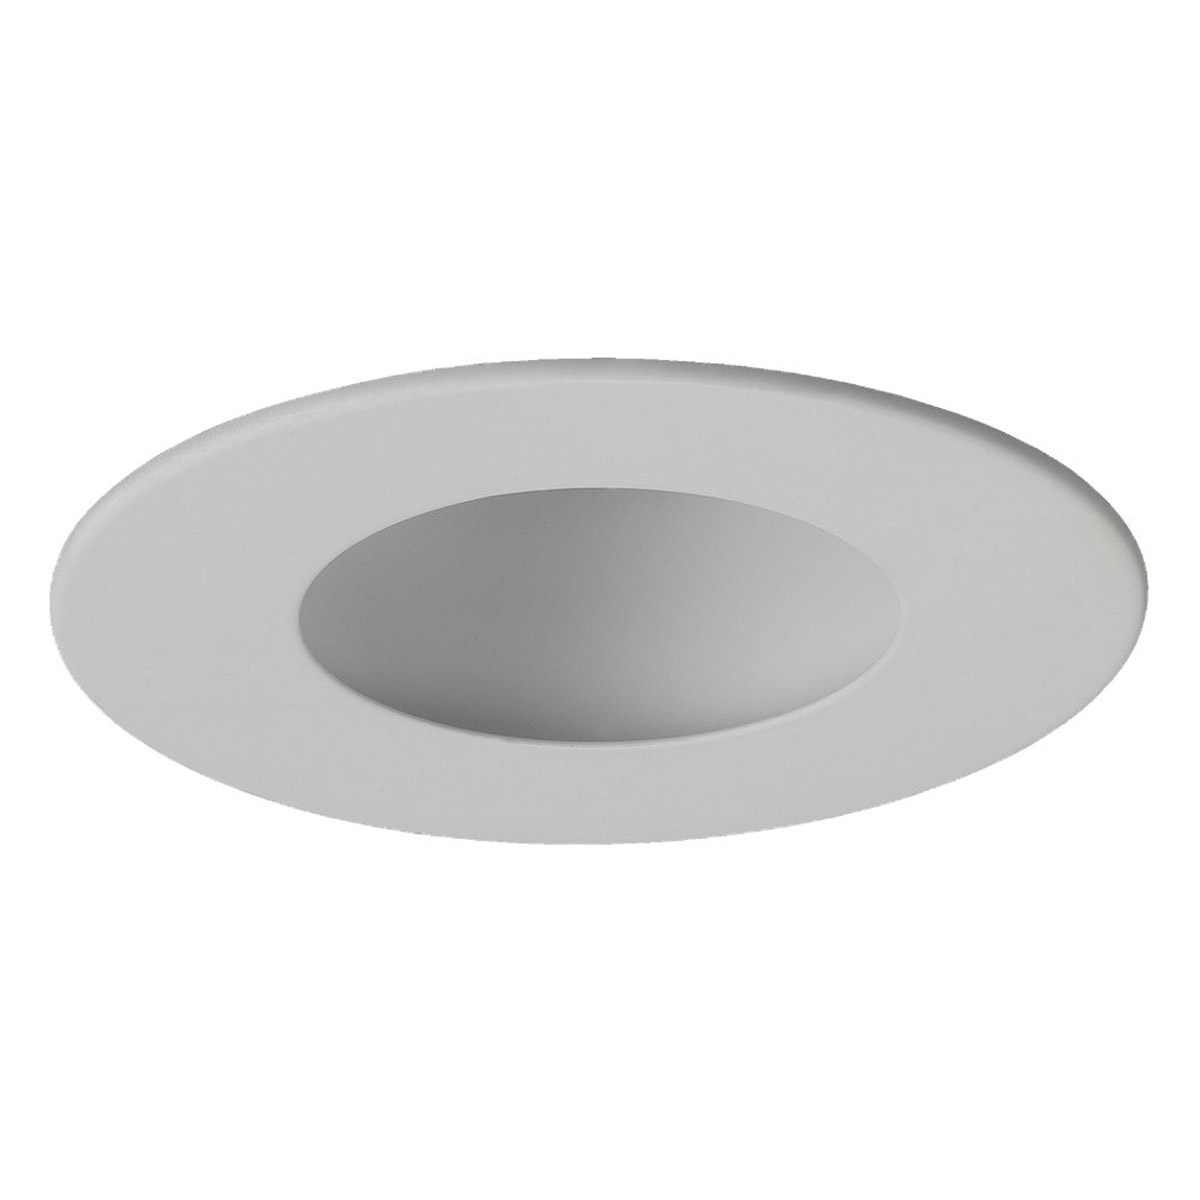 Sea Gull Lighting Signature Recessed Trim Only in White 11090AT-15 photo